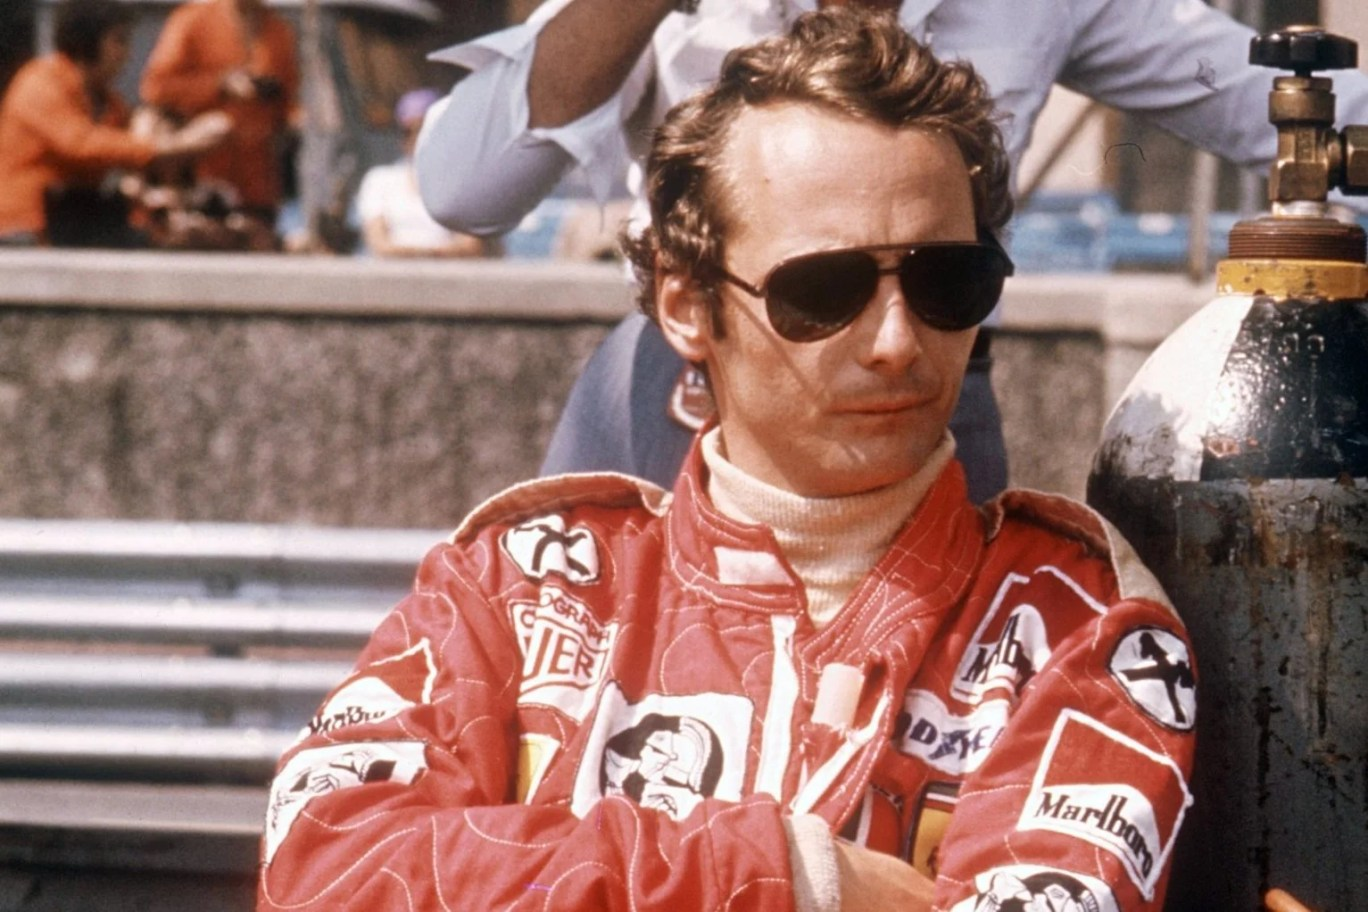 Niki Lauda durante la sua parentesi di carriera in Ferrari. Foto: Rex Features.